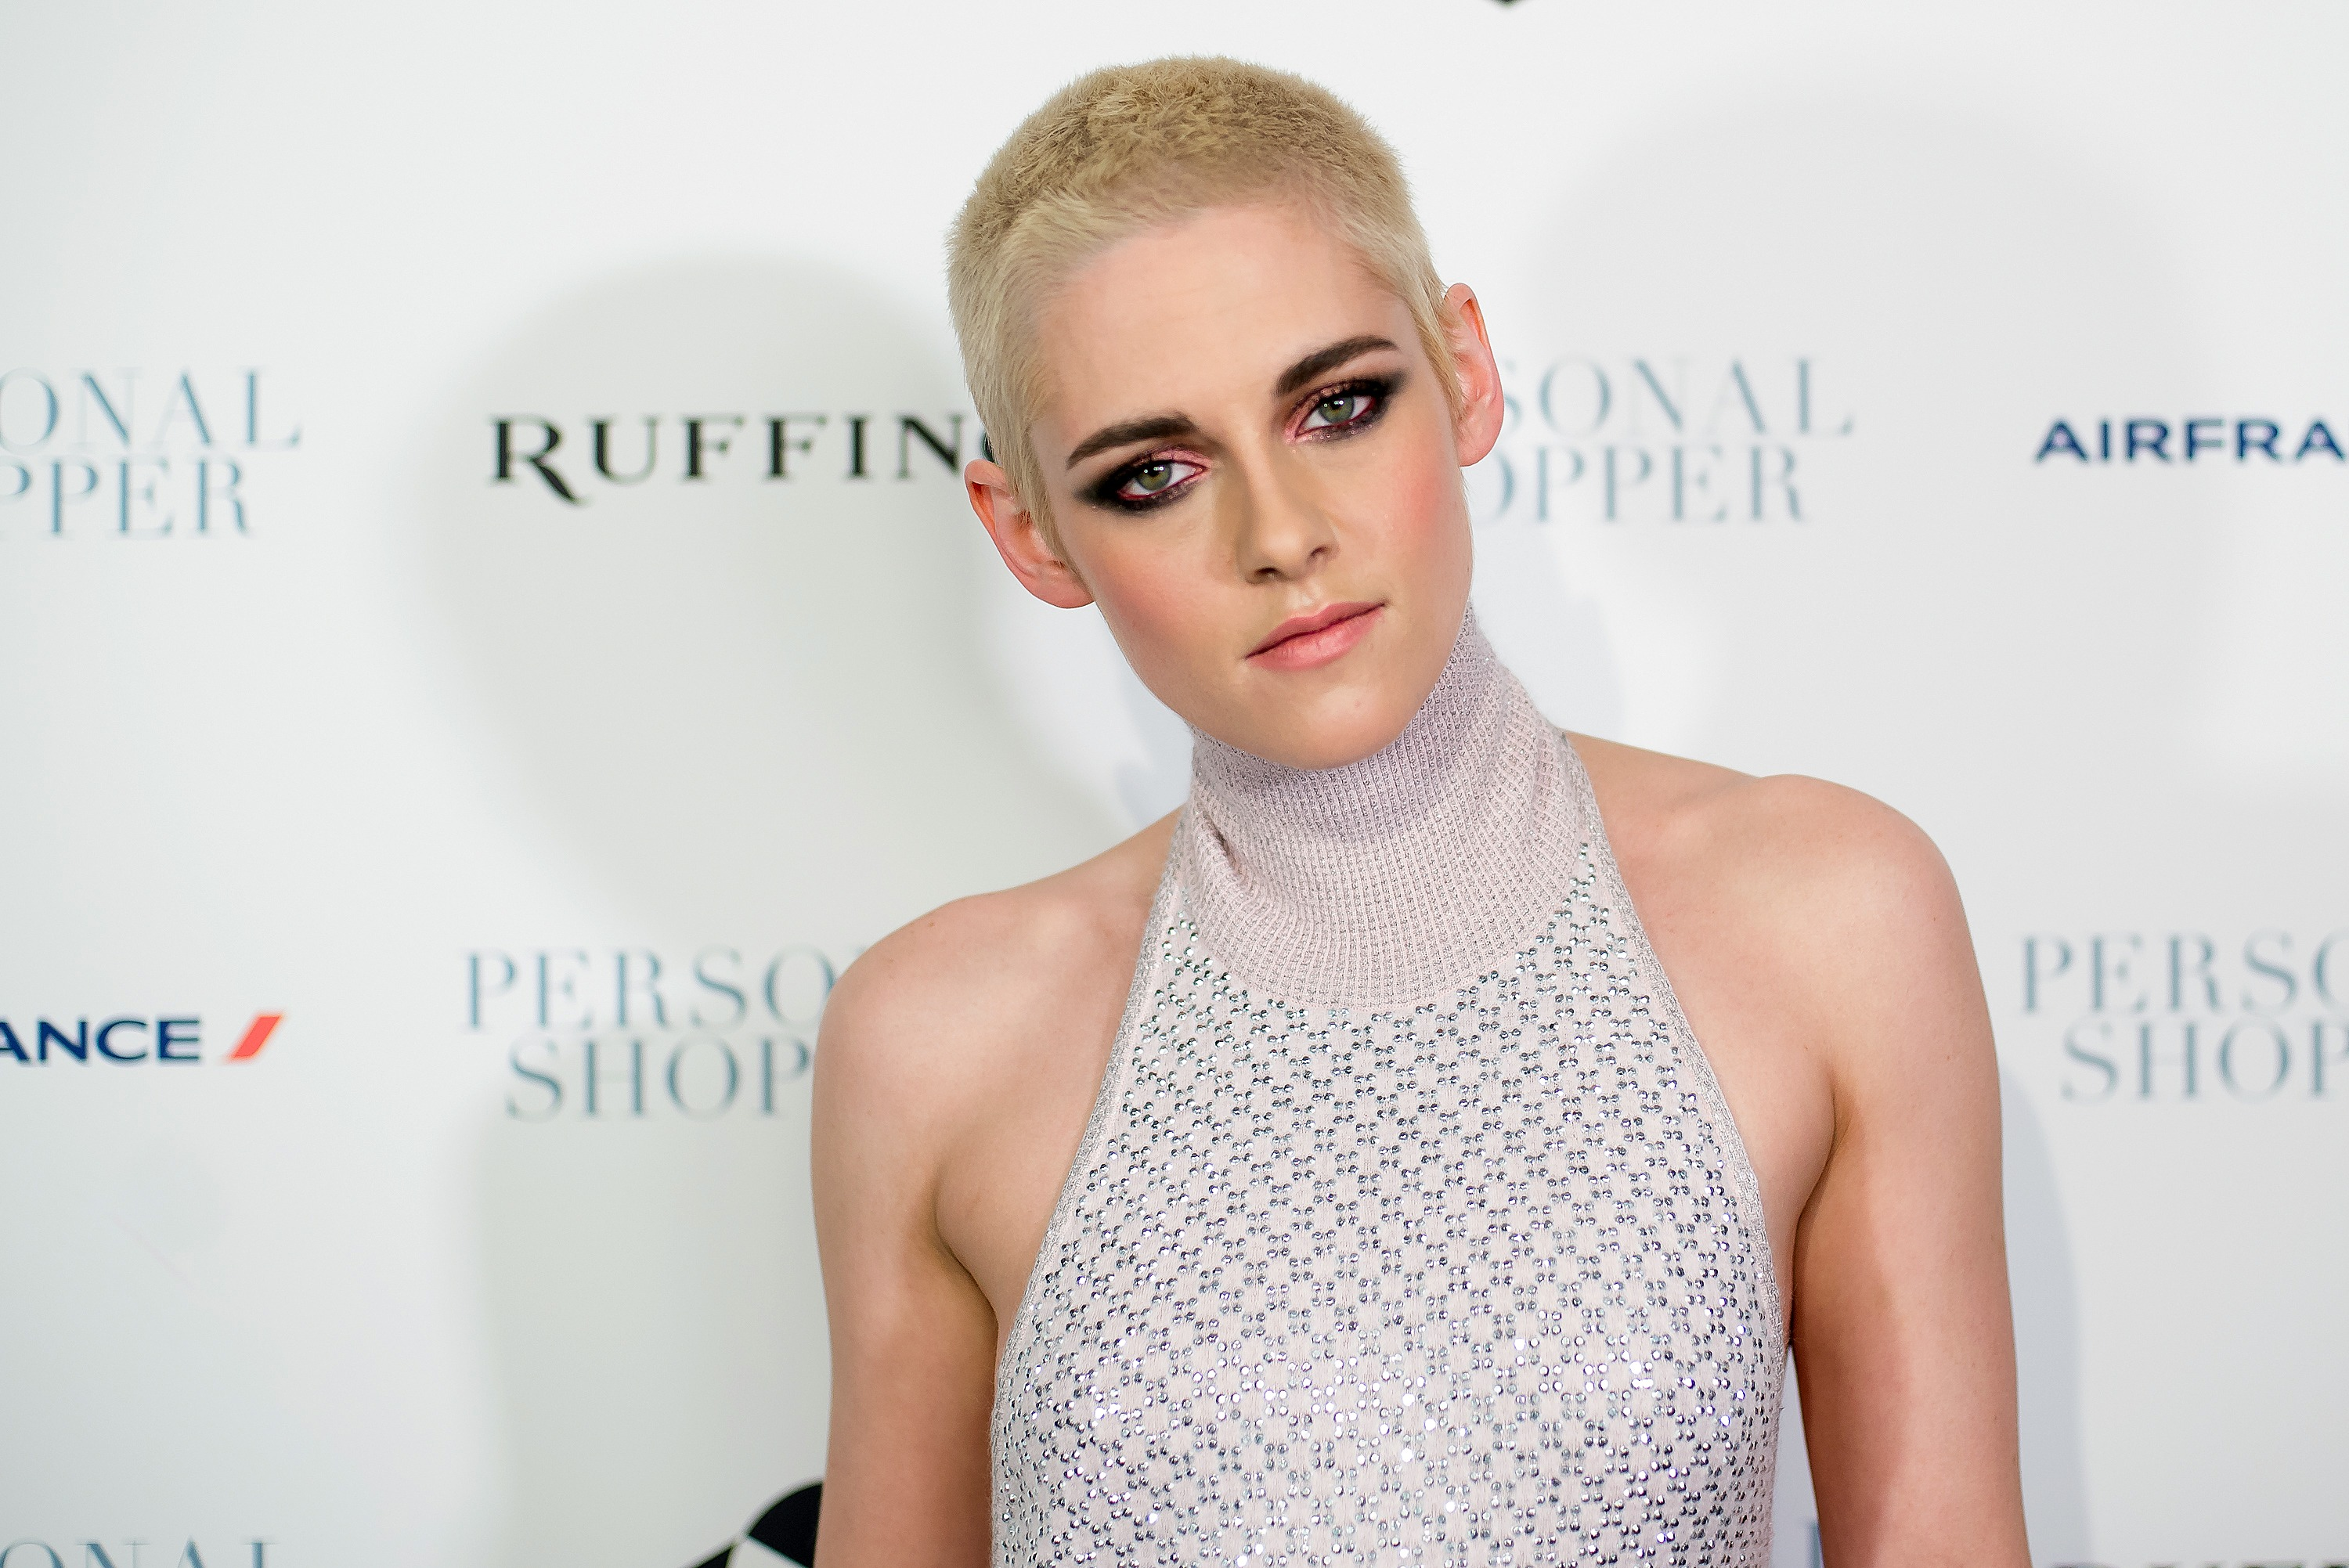 Kristen Stewart attends the  Personal Shopper  New York Premiere at Metrograph on March 9, 2017 in New York City.